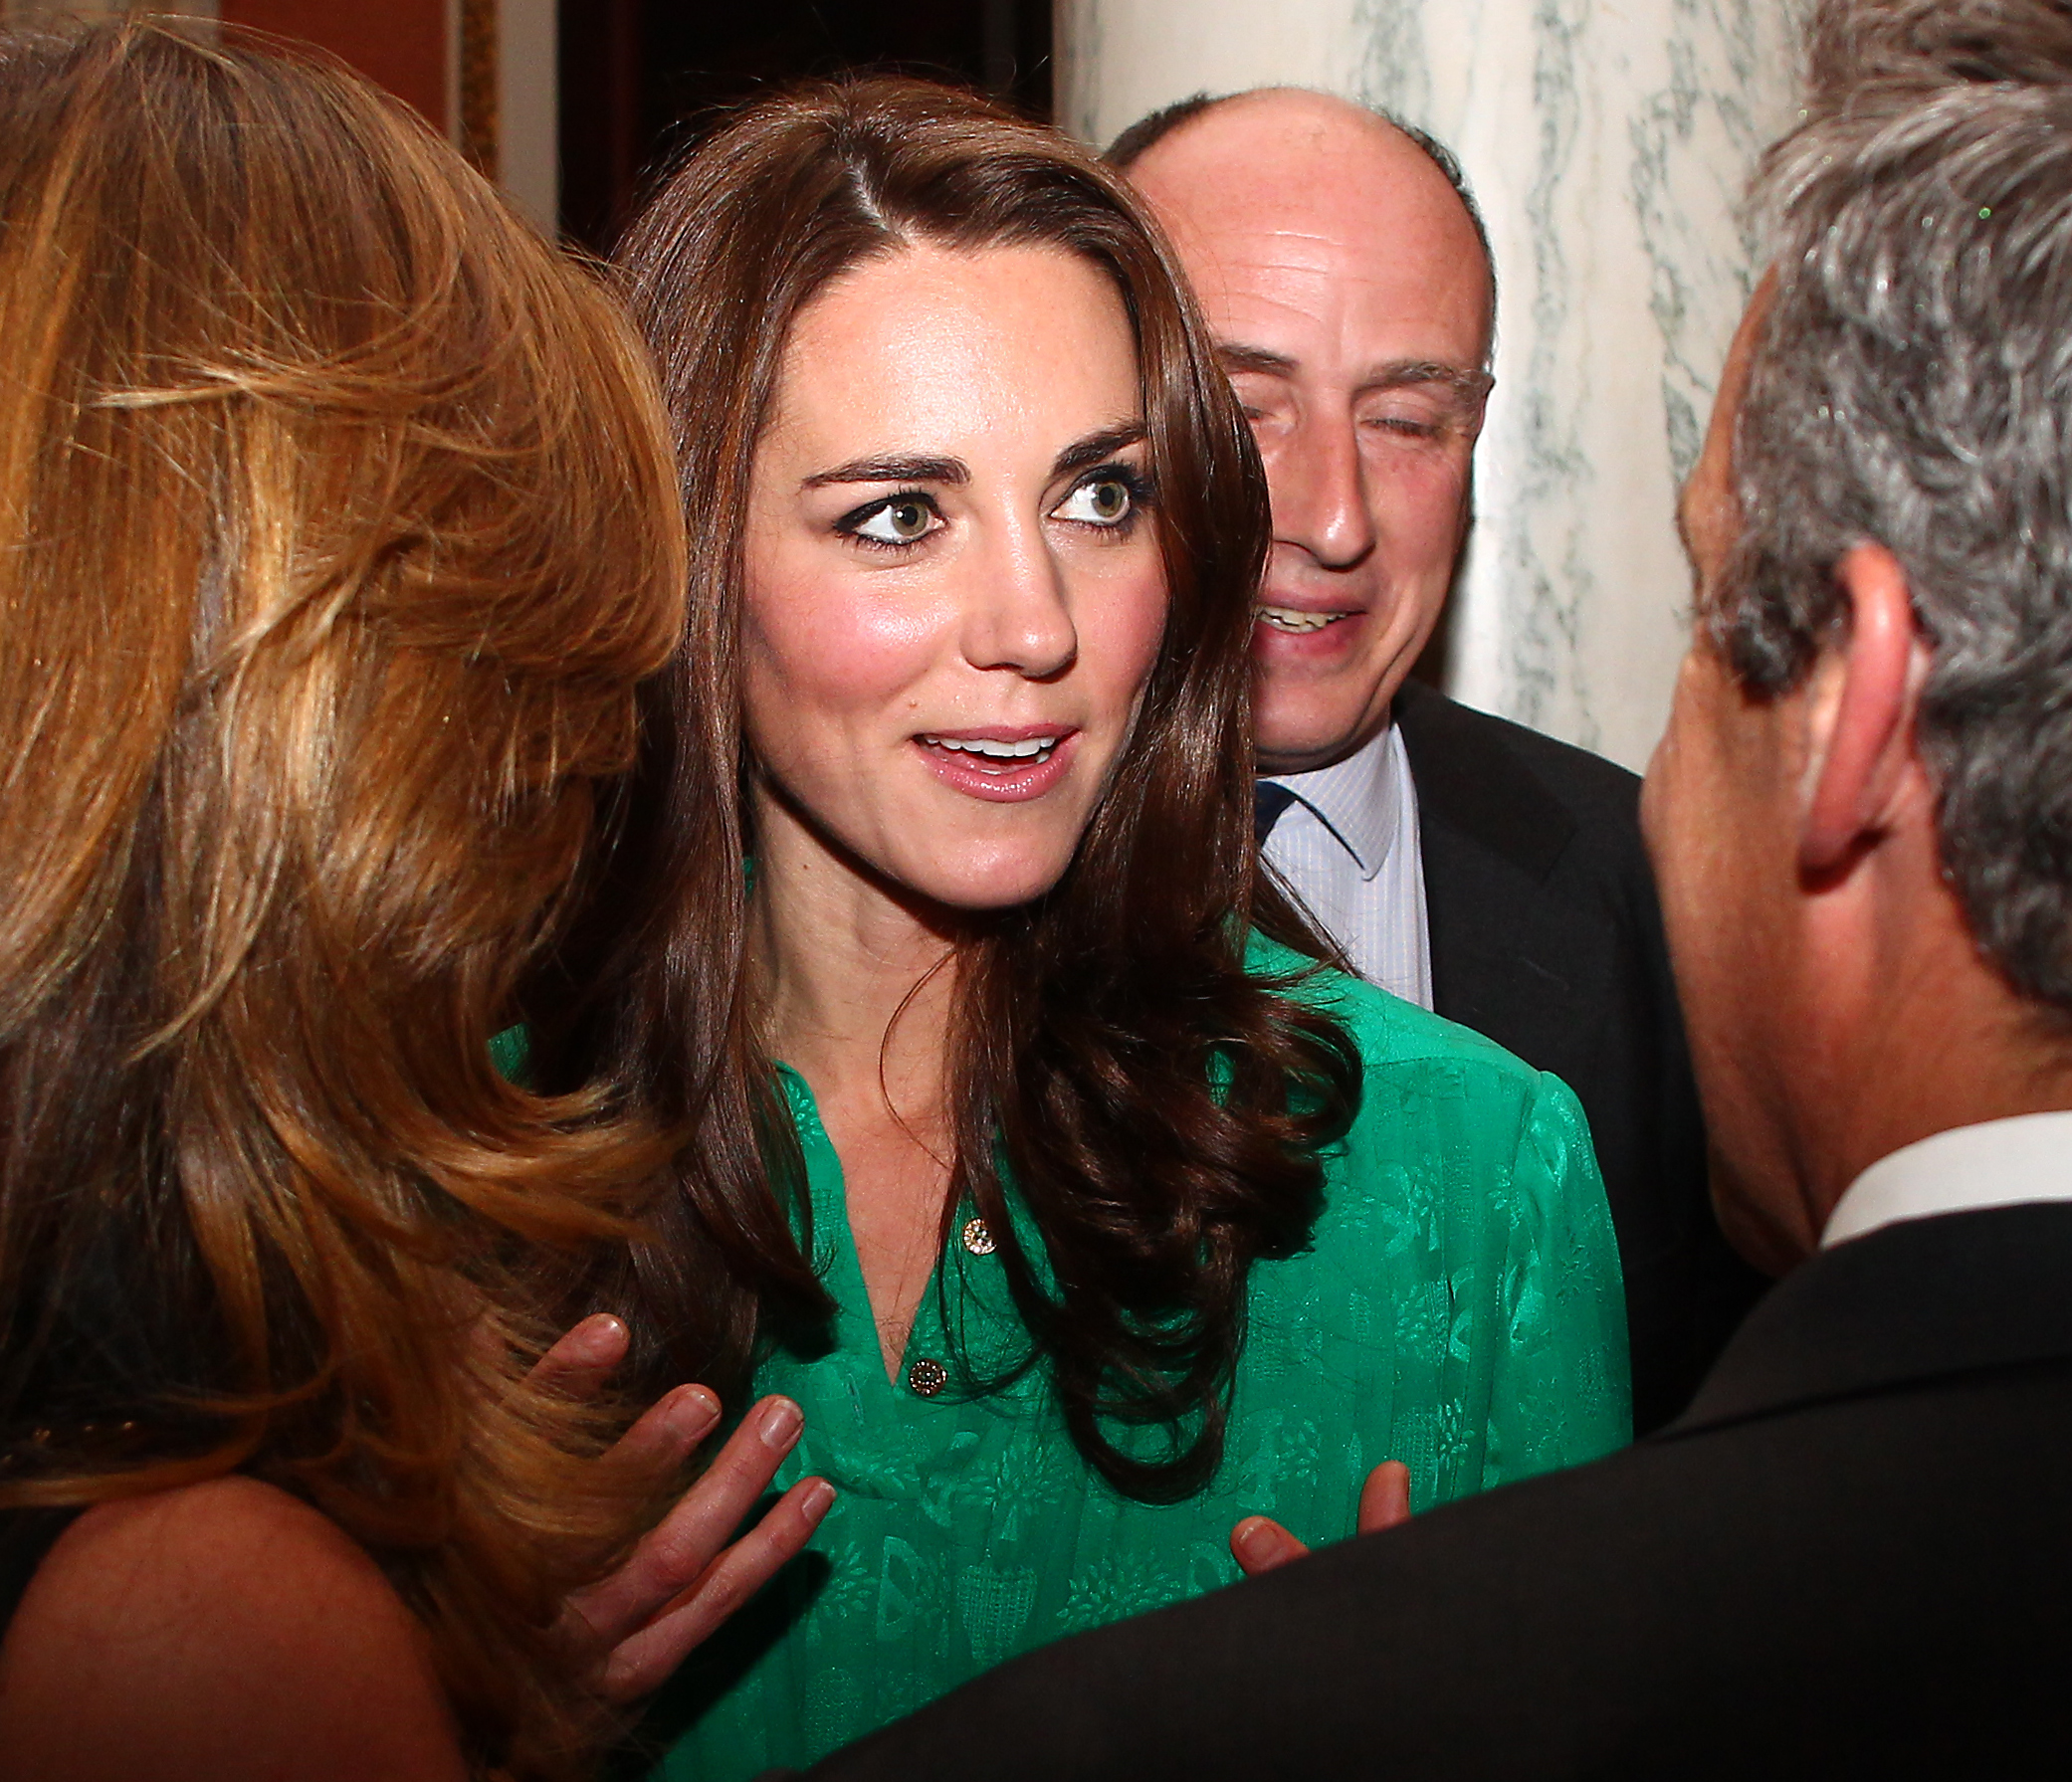 Kate Middleton wearing a green dress at a private reception.